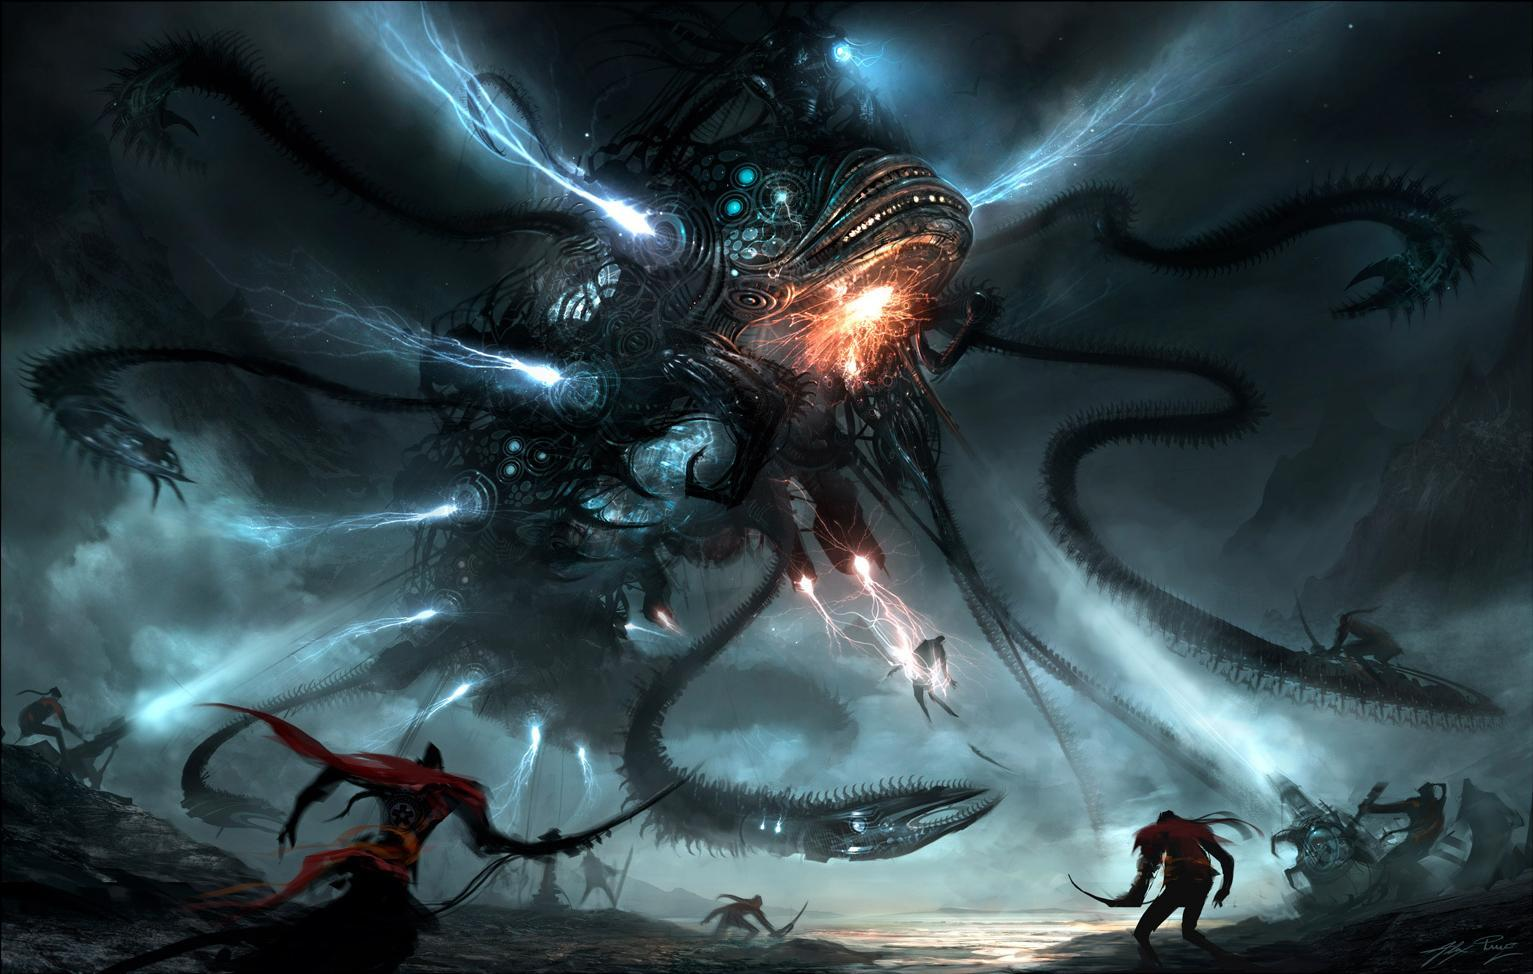 alien life forms Alex HD Wallpaper